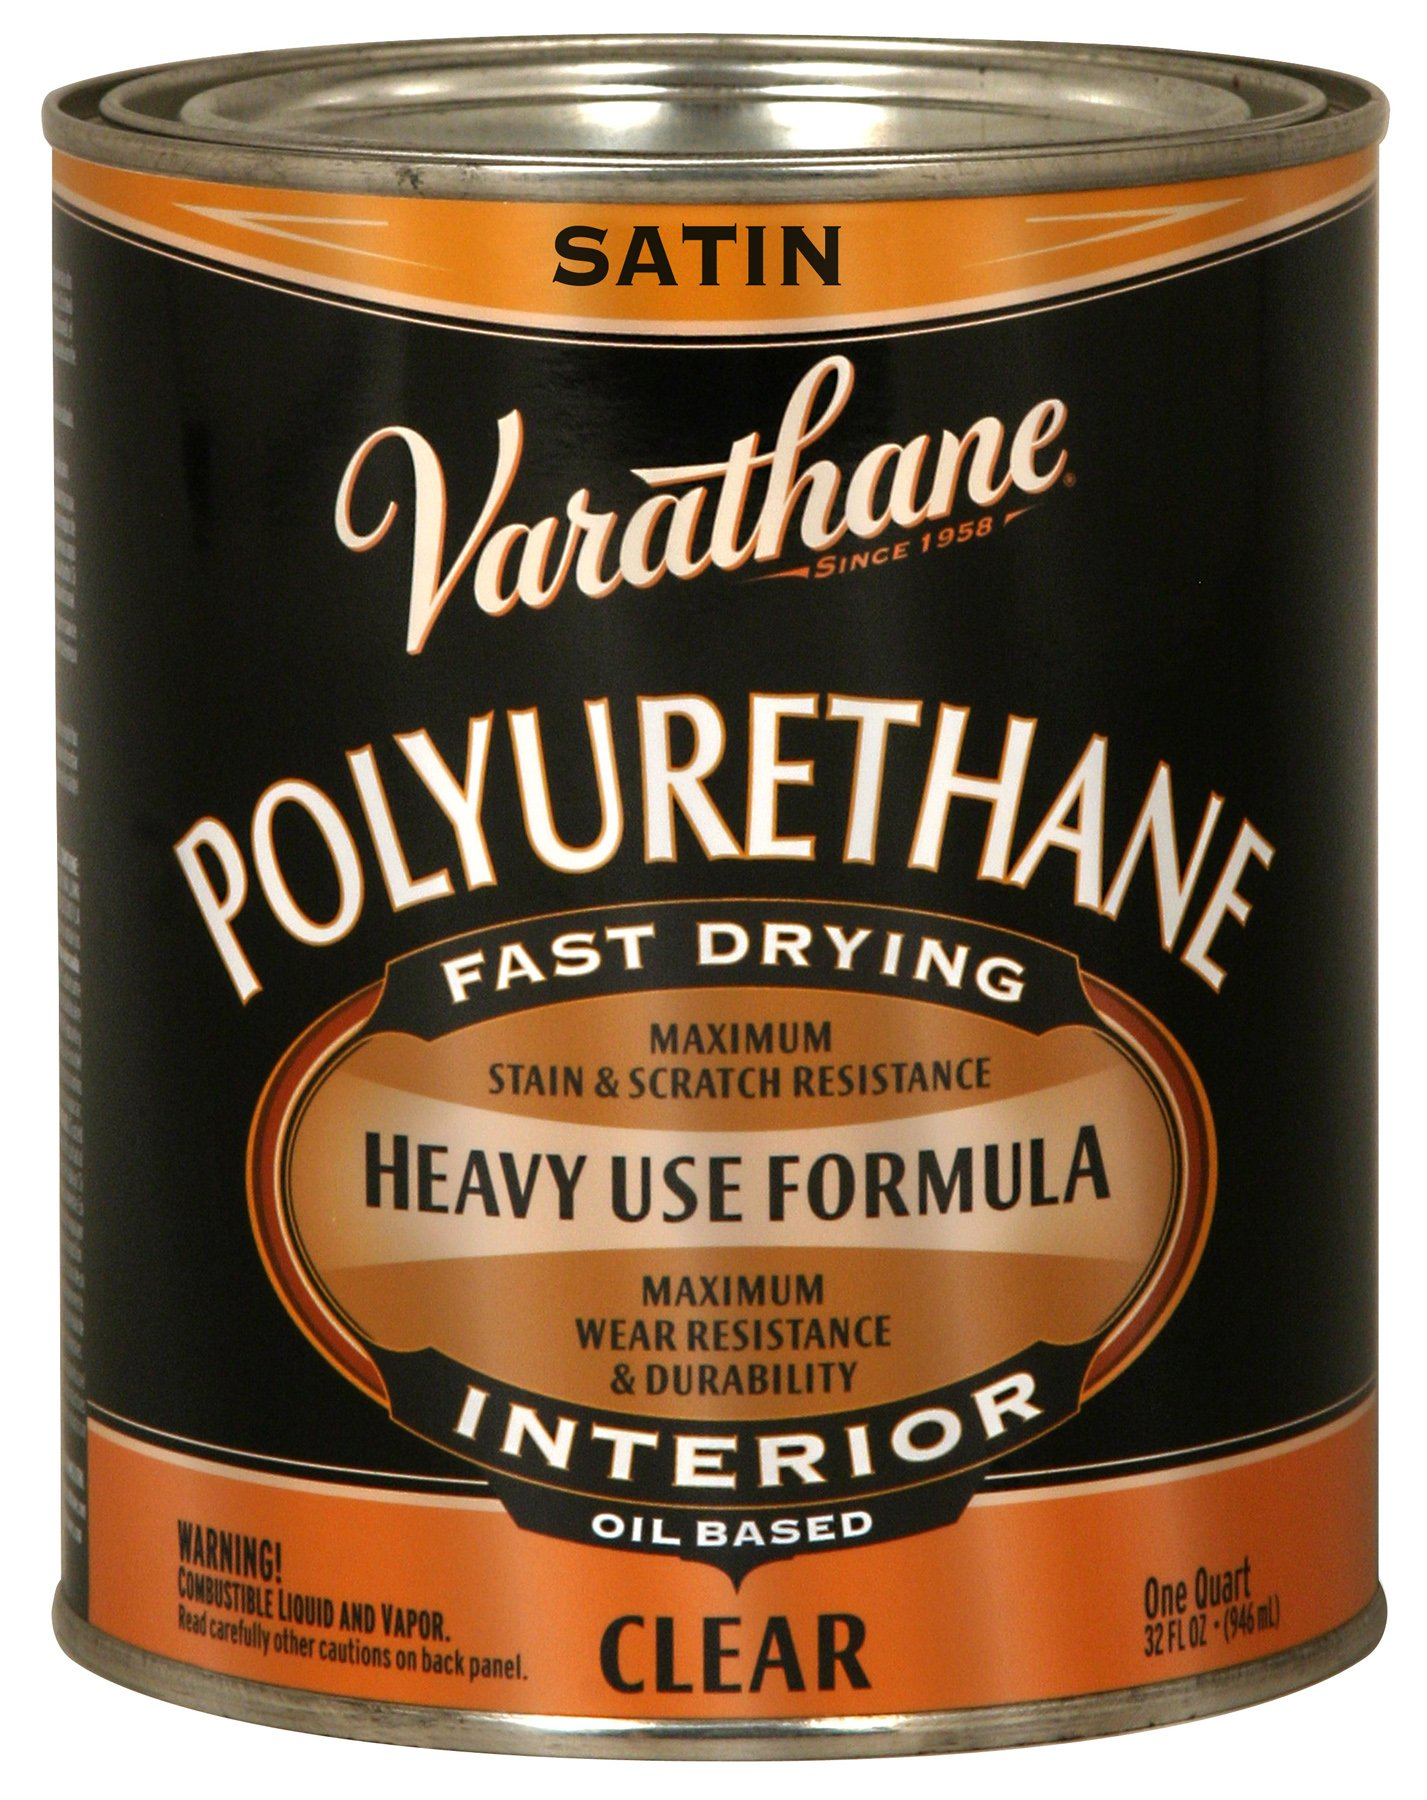 Rust-Oleum Varathane 9141H 1-Quart Interior Oil Polyurethane, Satin Finish